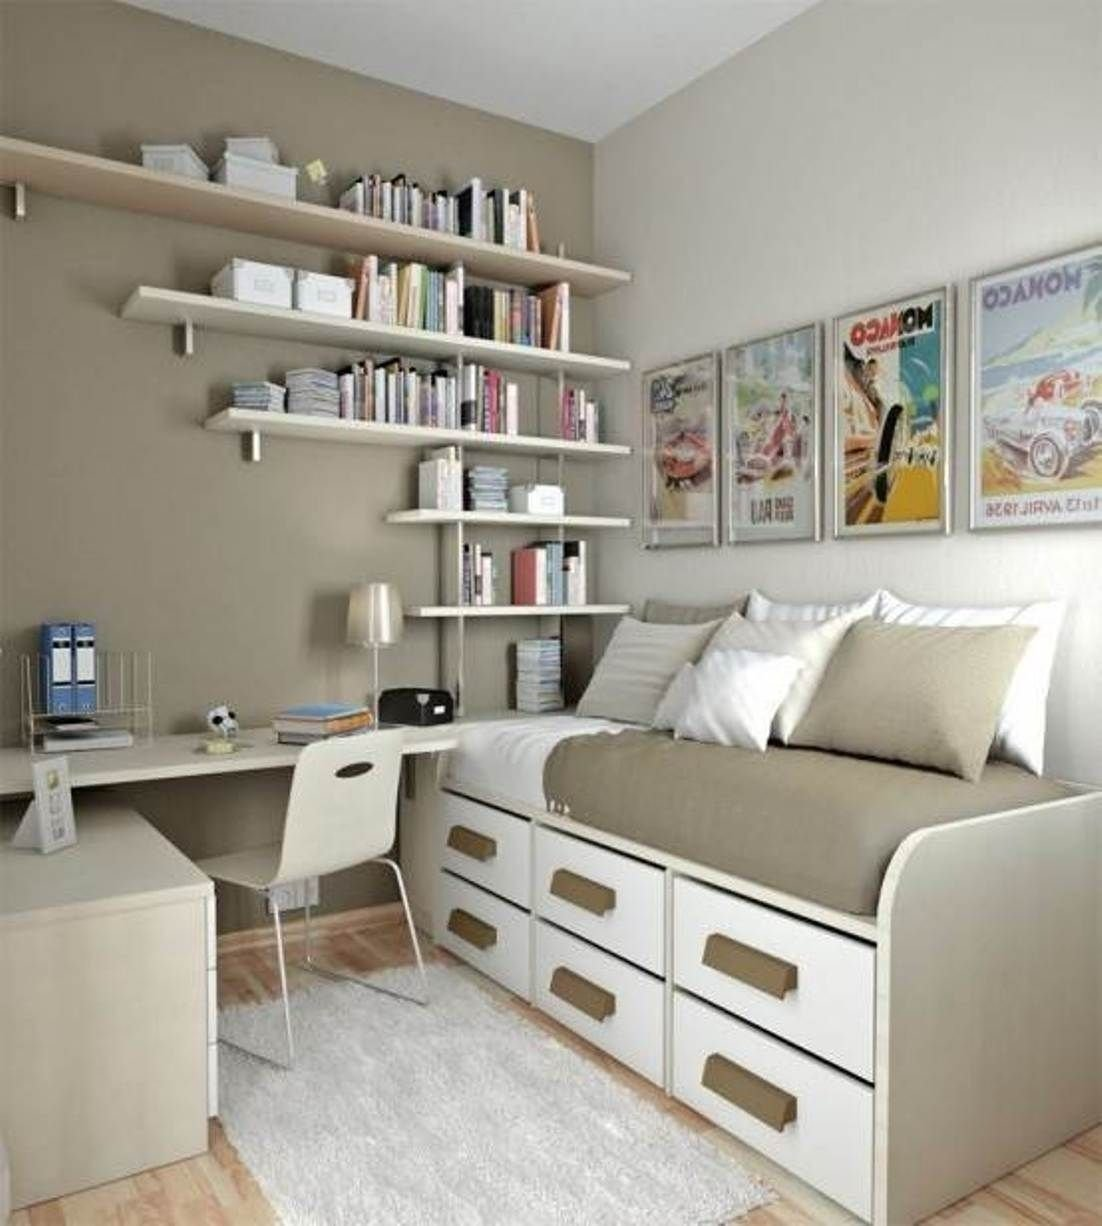 10 Nice Storage Ideas For Small Rooms wall mounted storage ideas for small bedrooms space saving storage 2020